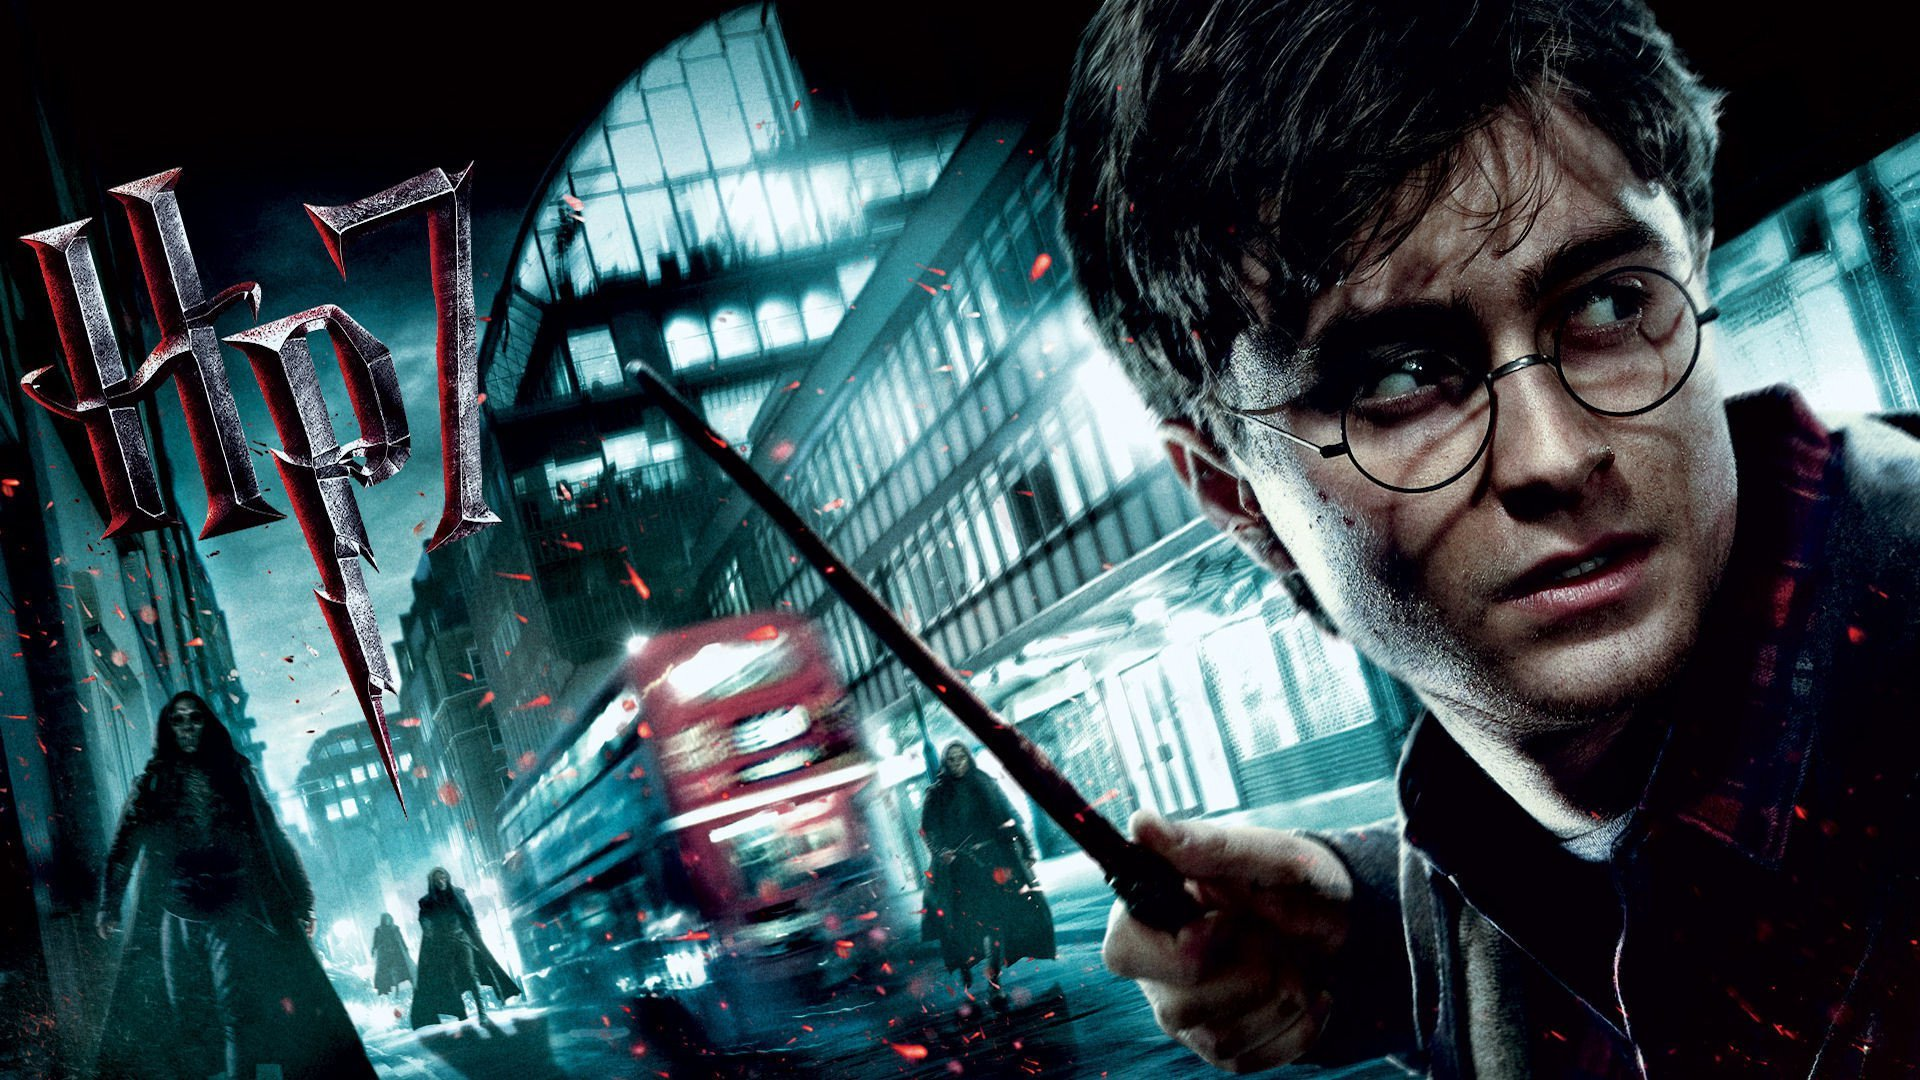 Awesome Harry Potter And The Deathly Hallows: Part 1 free background ID:144632 for full hd 1080p PC